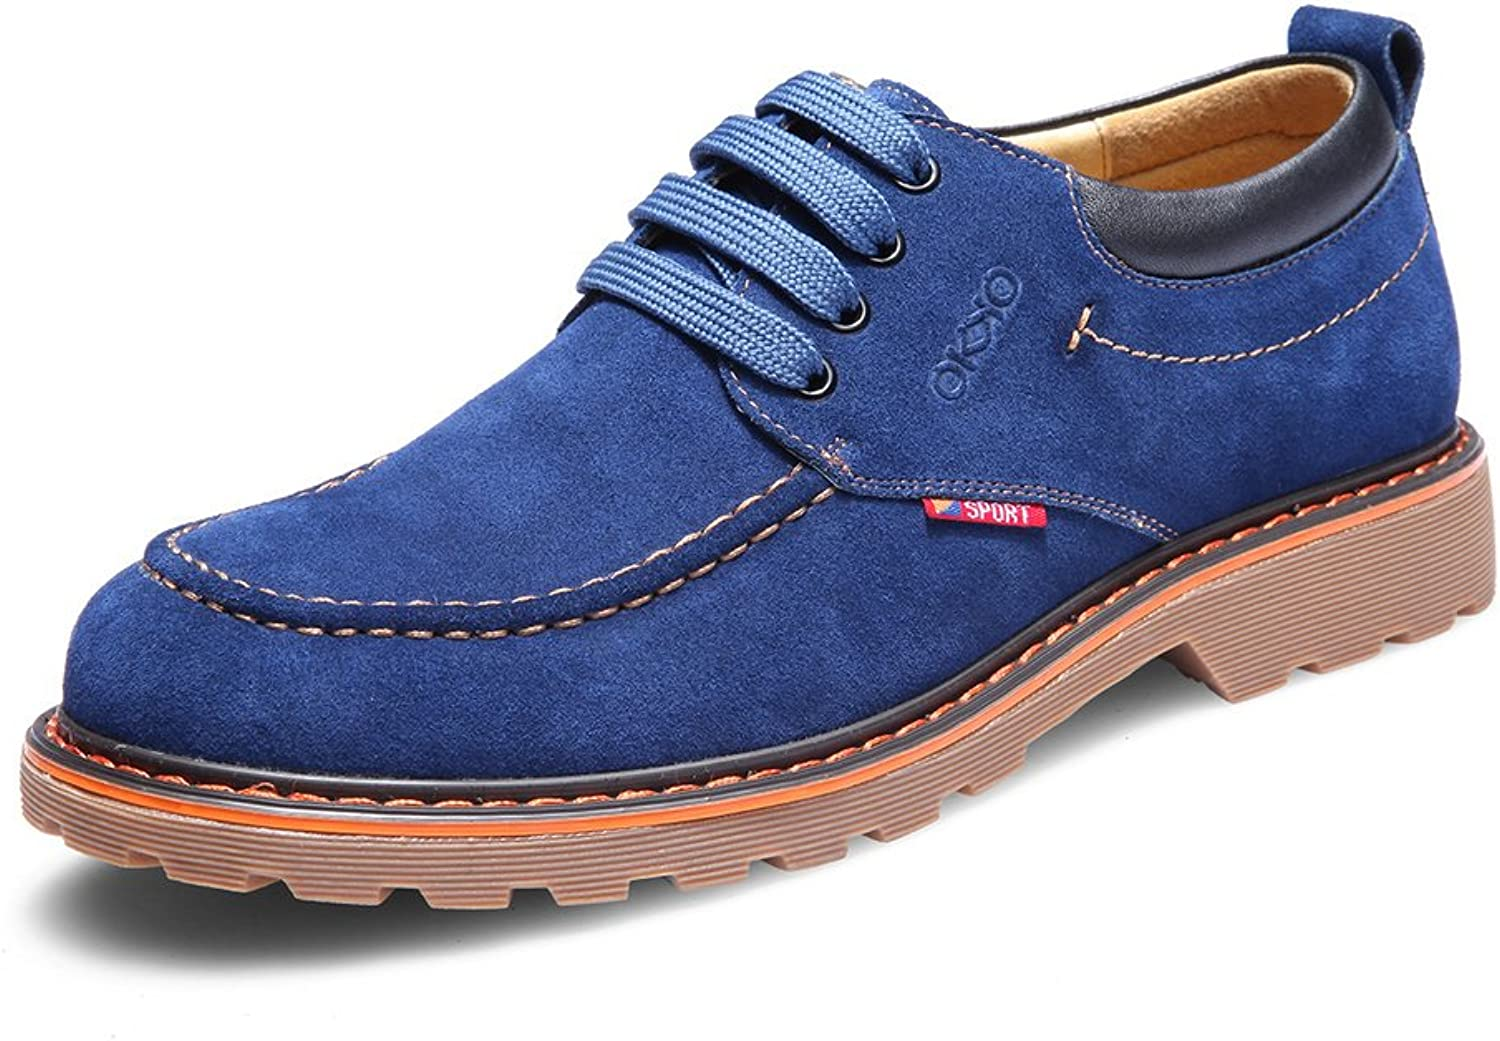 MET RXL Summer Men Wear shoes British Style Casual shoes Breathable shoes